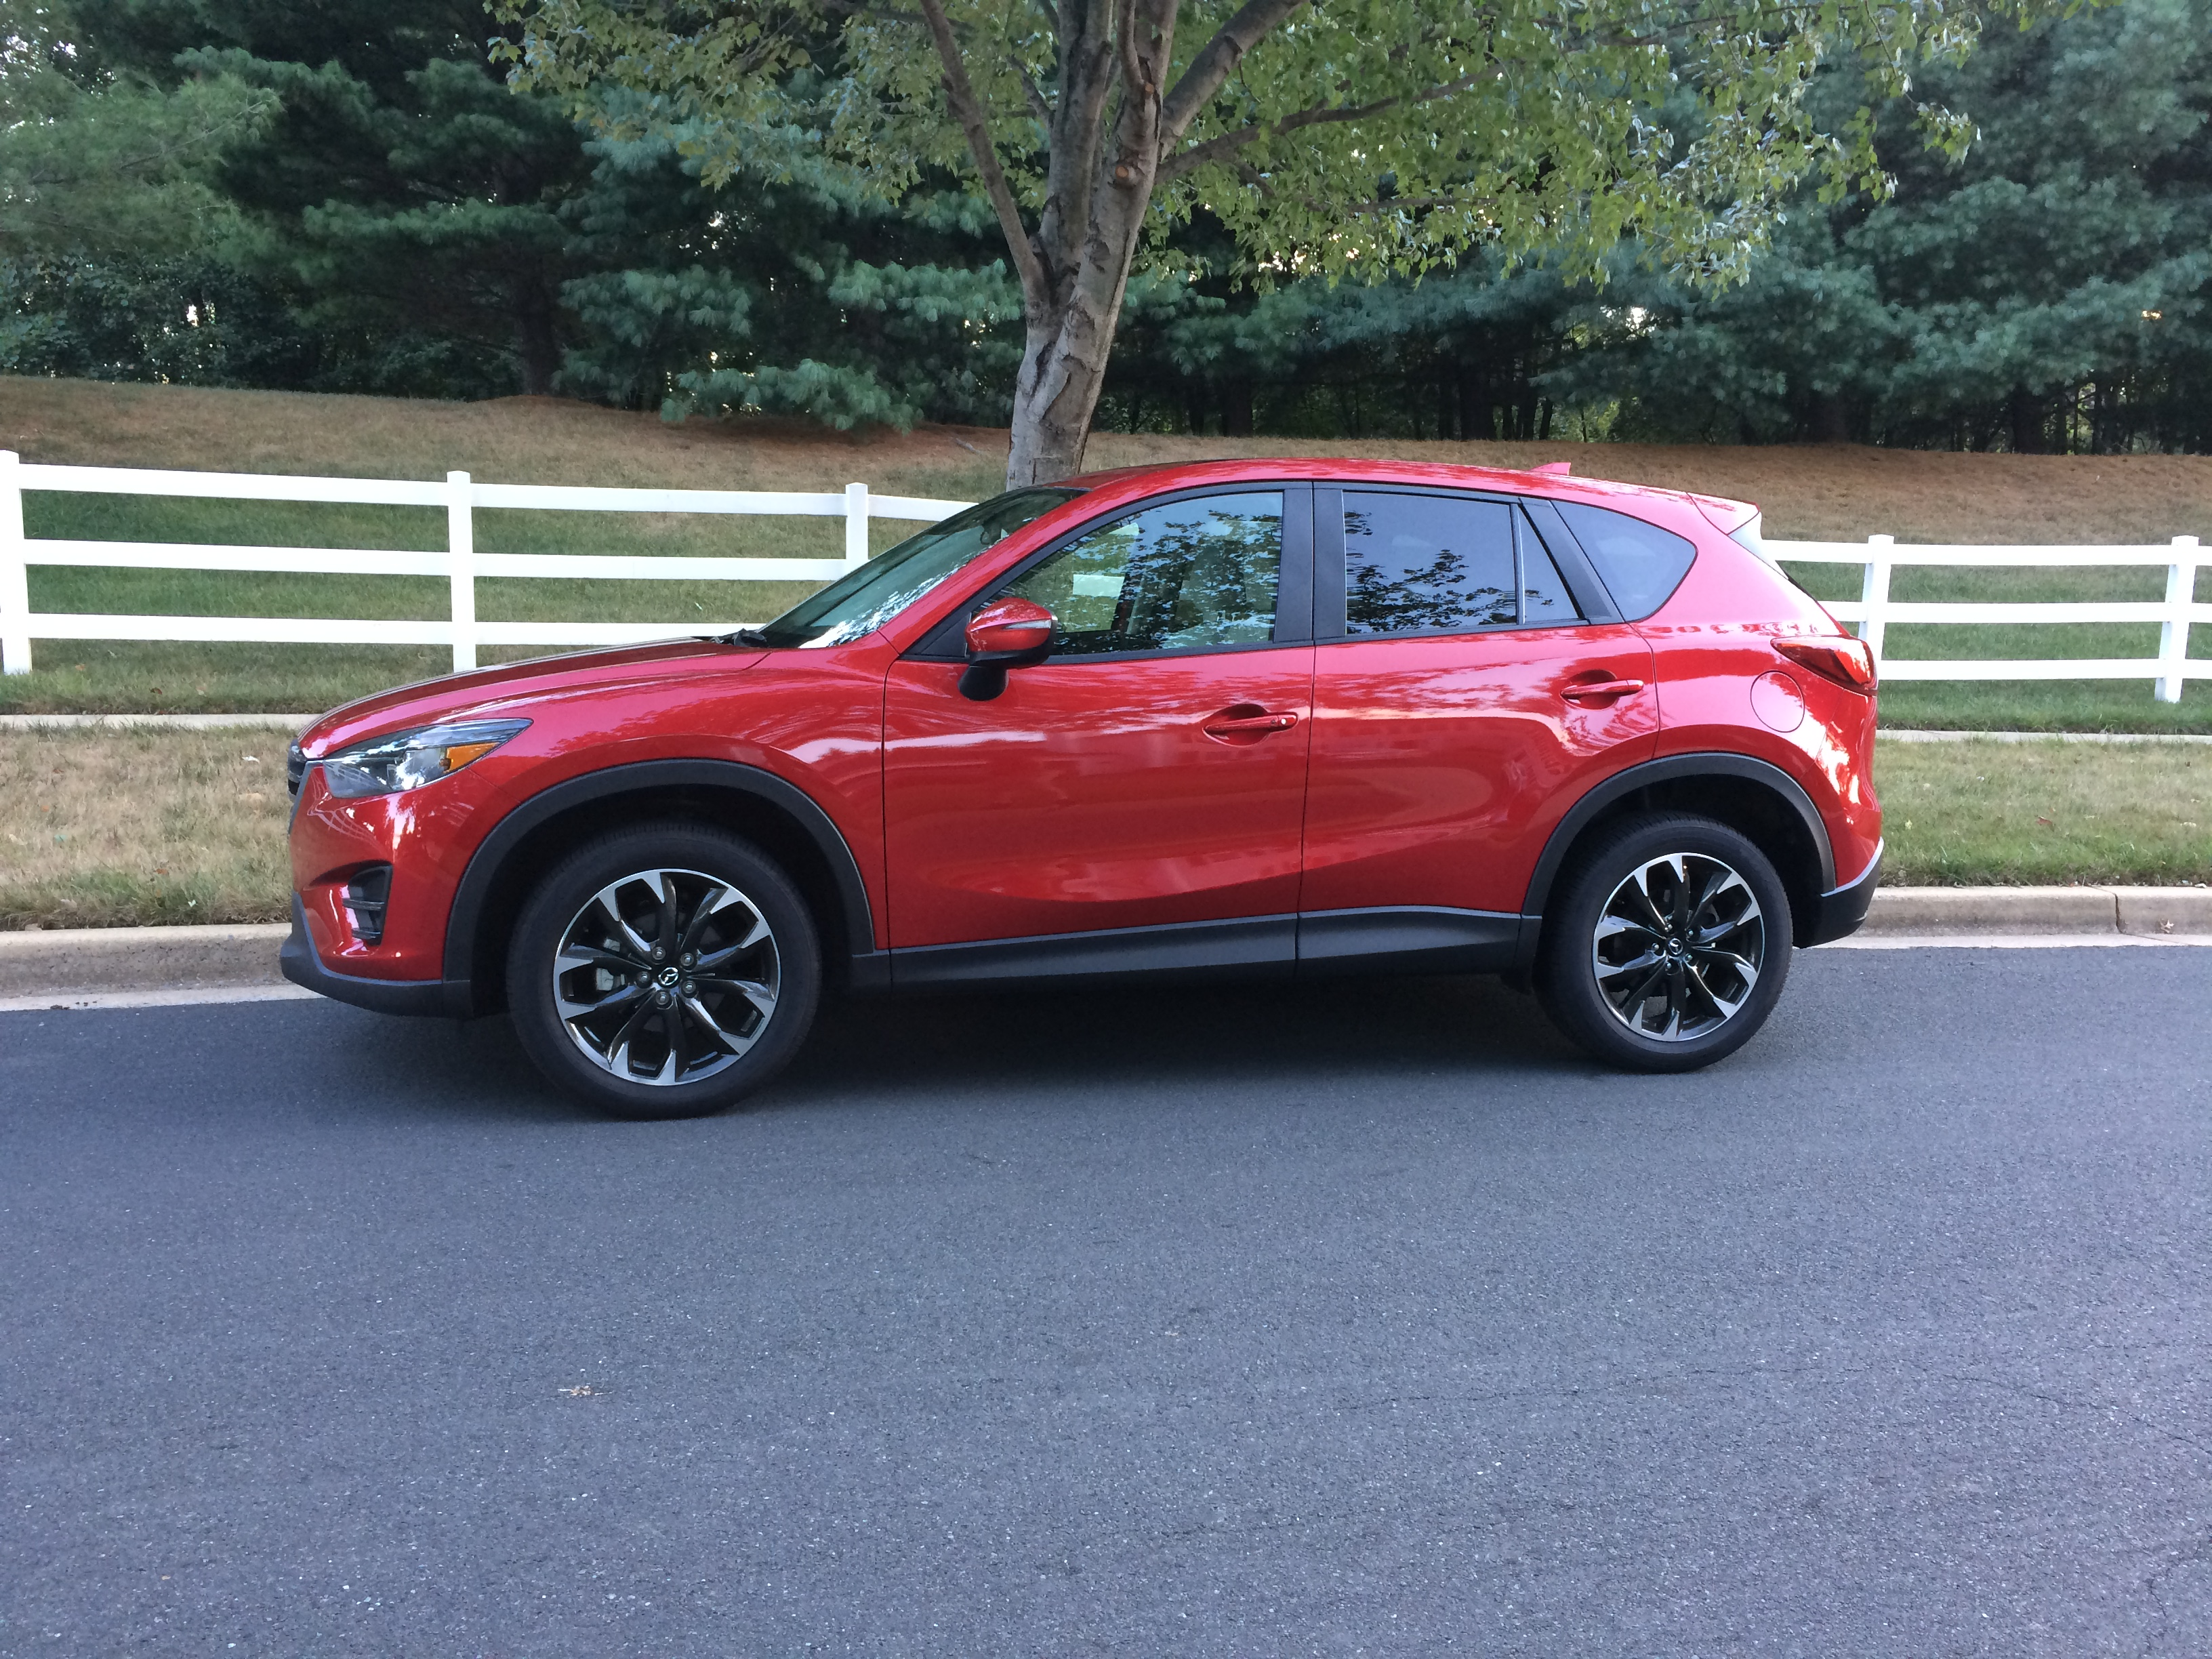 Mazda CX-5 Grand Touring: A sporty small crossover with an improved interior for 2016